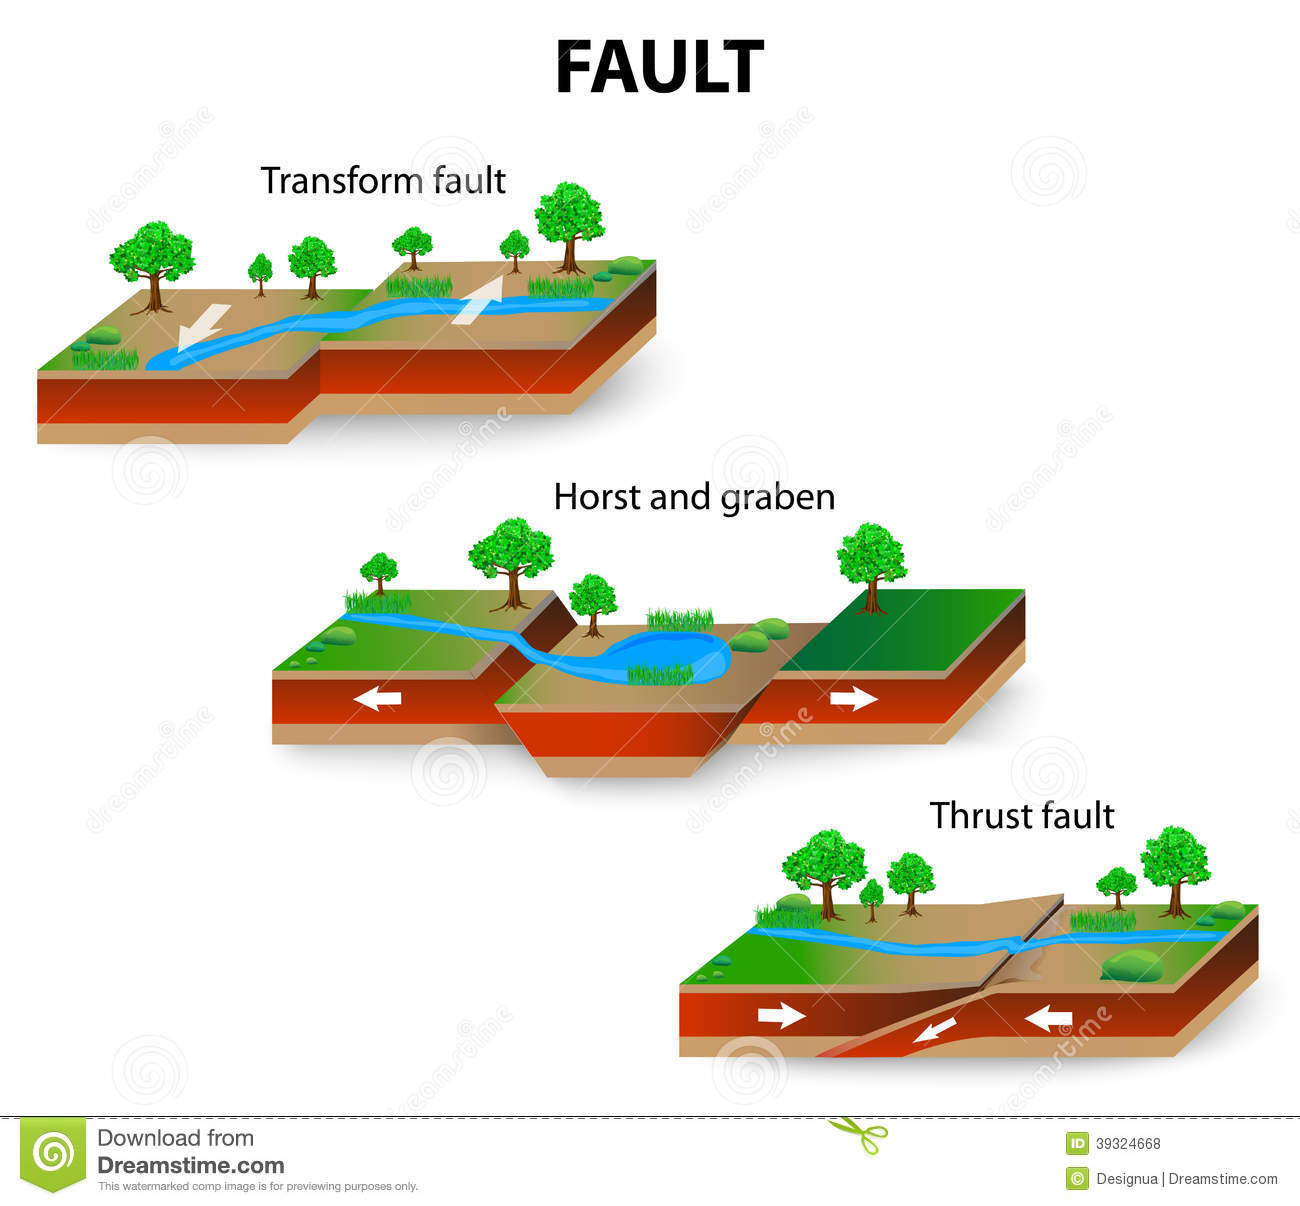 3 types of faults diagram 2001 honda accord wiring fault geology stock vector image 39324668